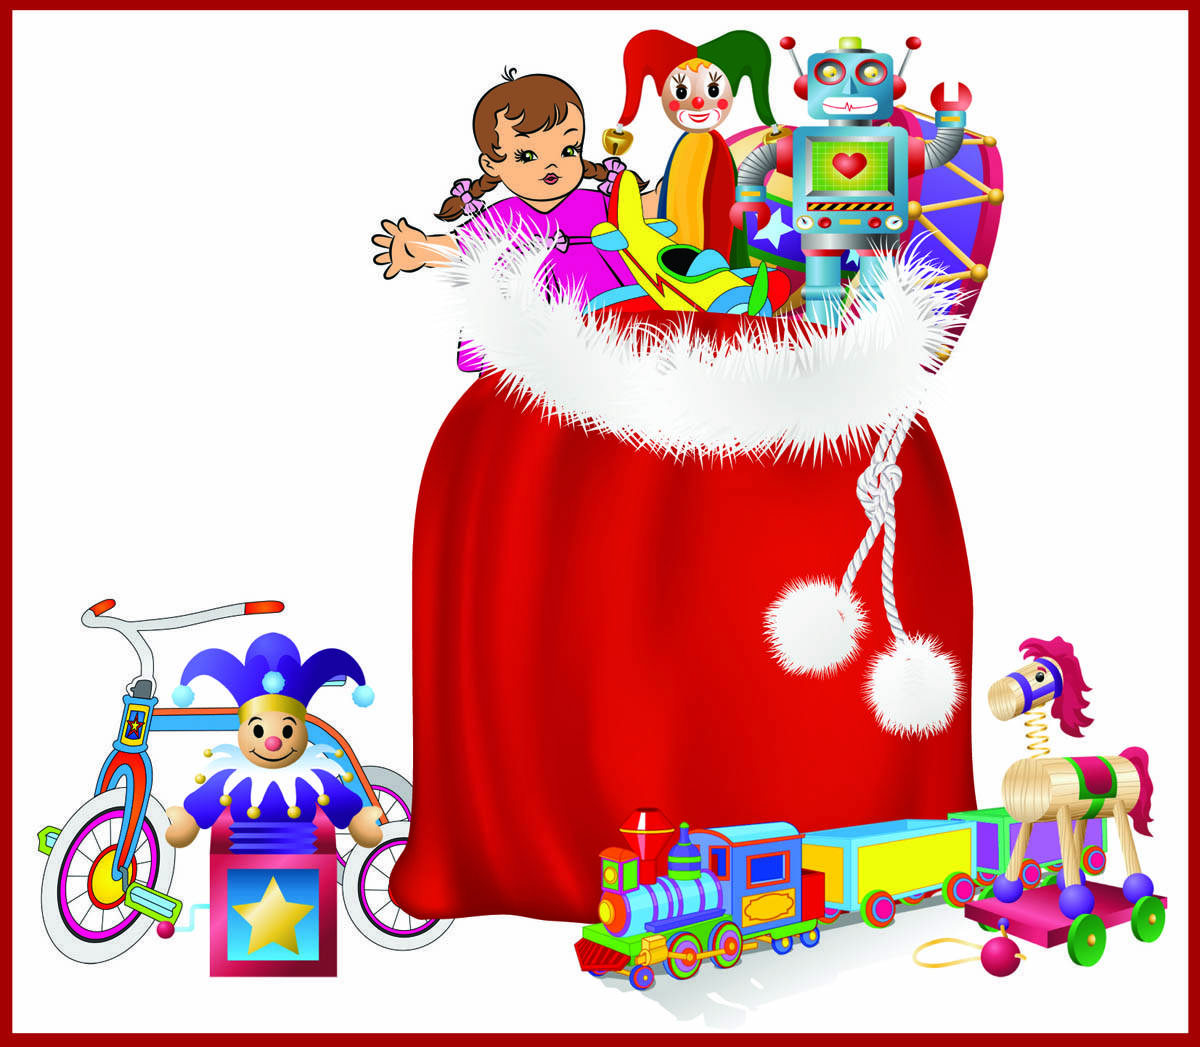 Free clipart christmas toys clip art transparent stock Free Free Toys Cliparts, Download Free Clip Art, Free Clip Art on ... clip art transparent stock